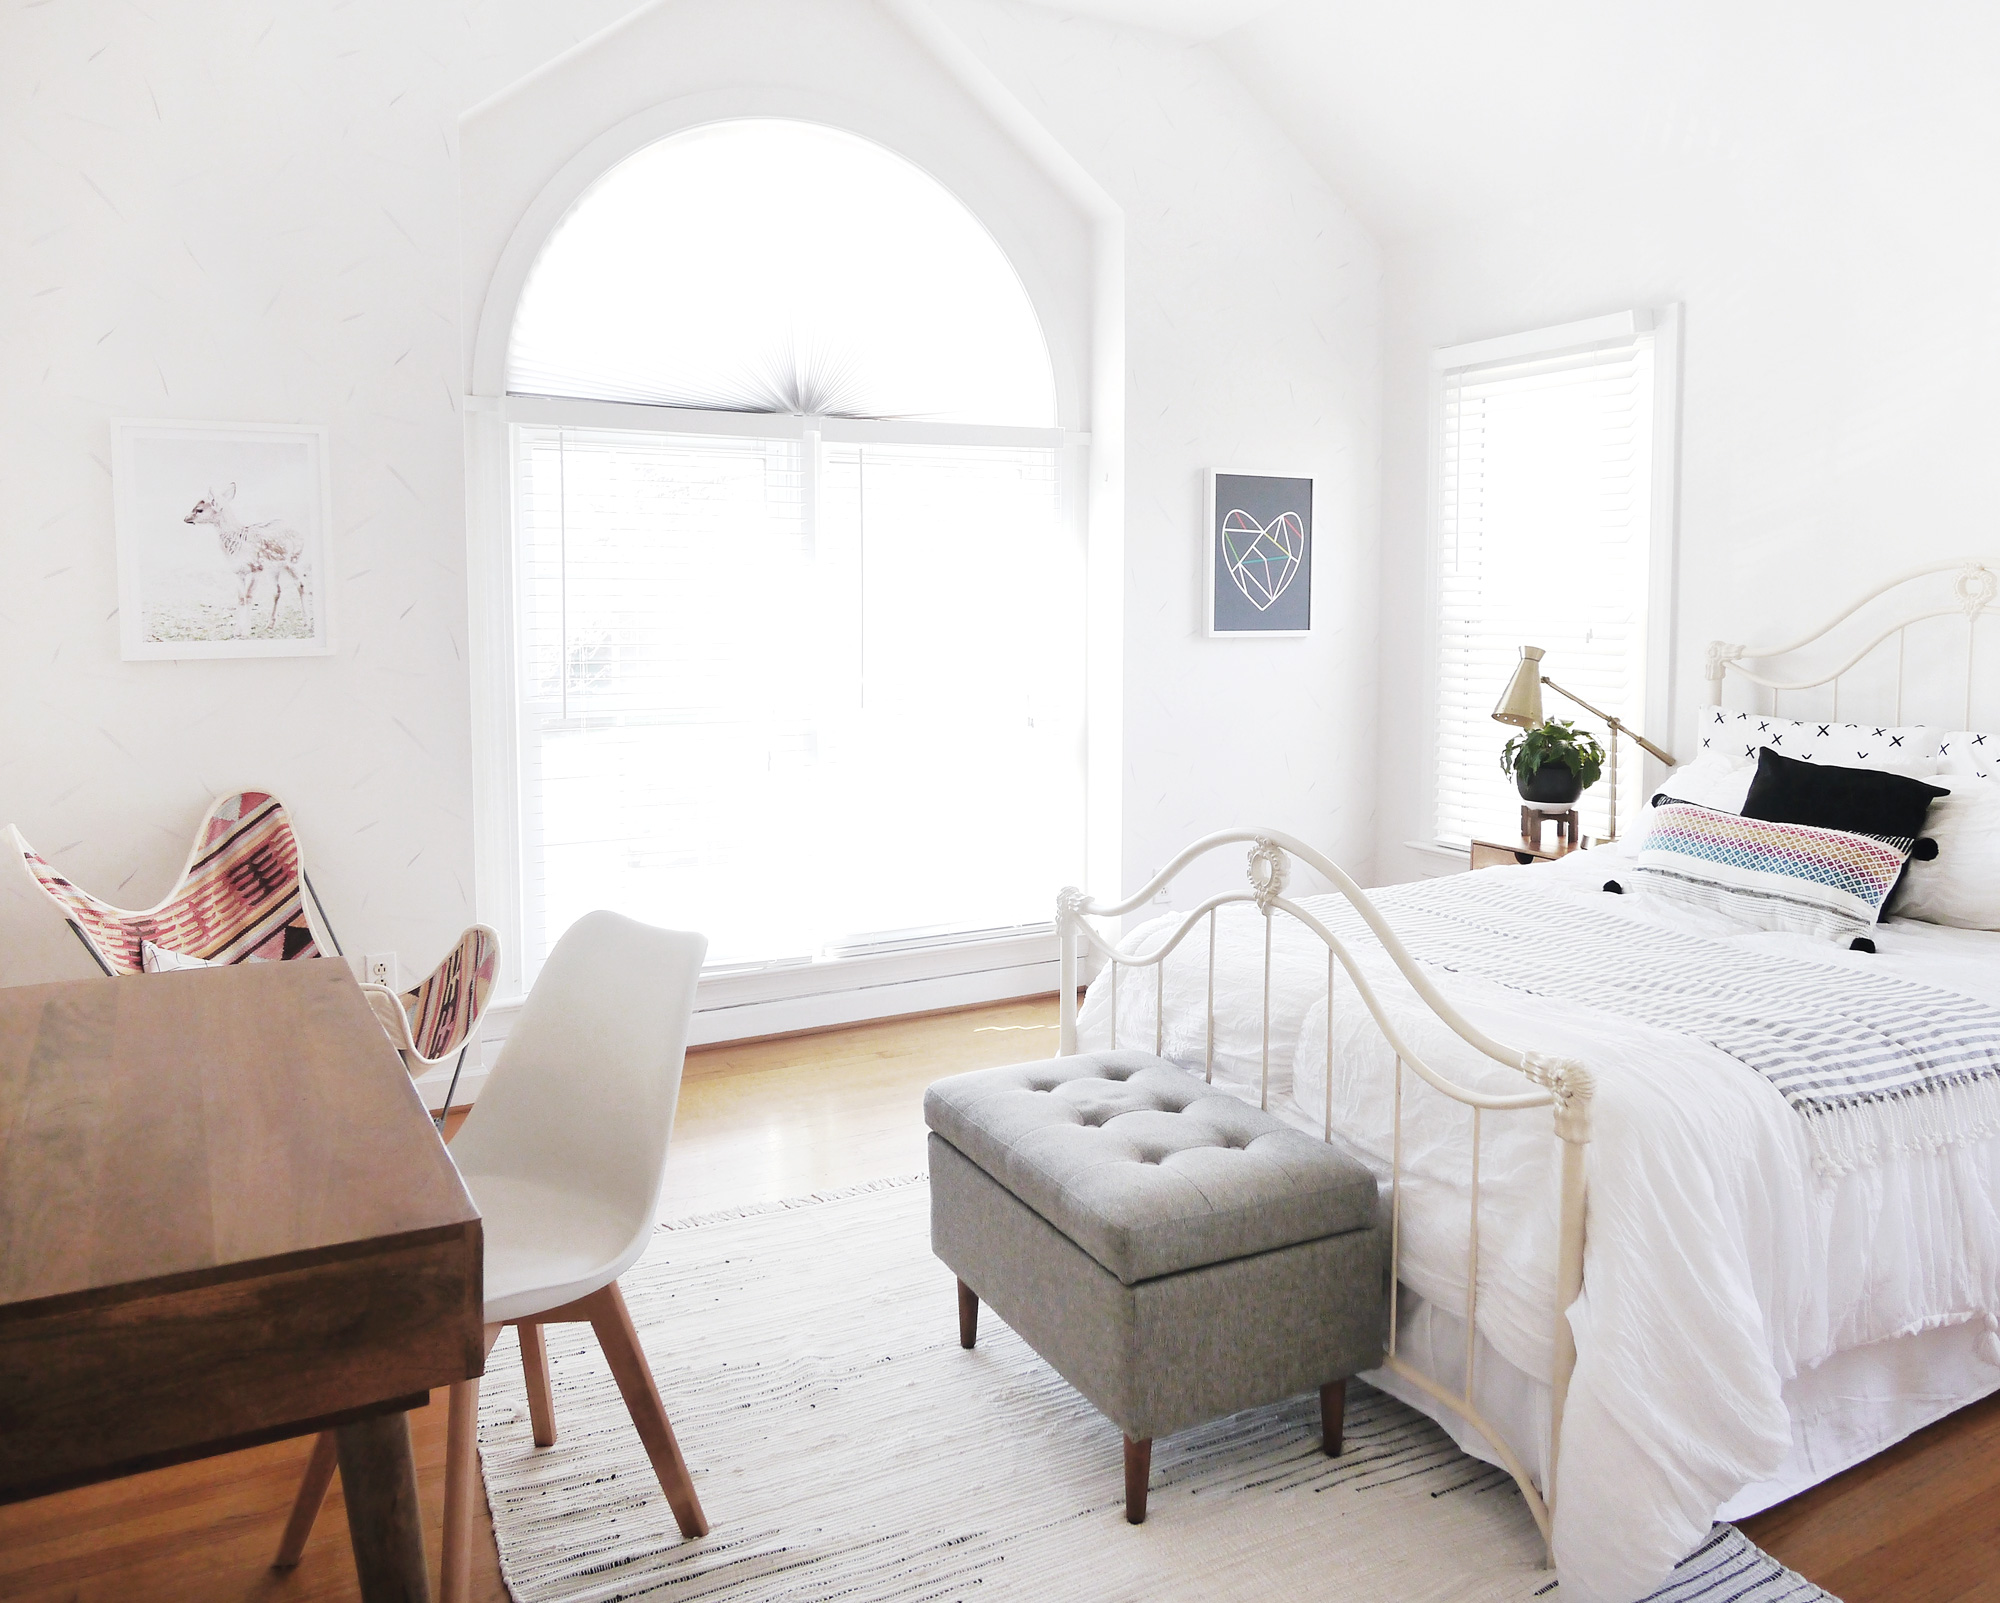 A Bohemian Inspired Room  Tour this Inviting and Charming